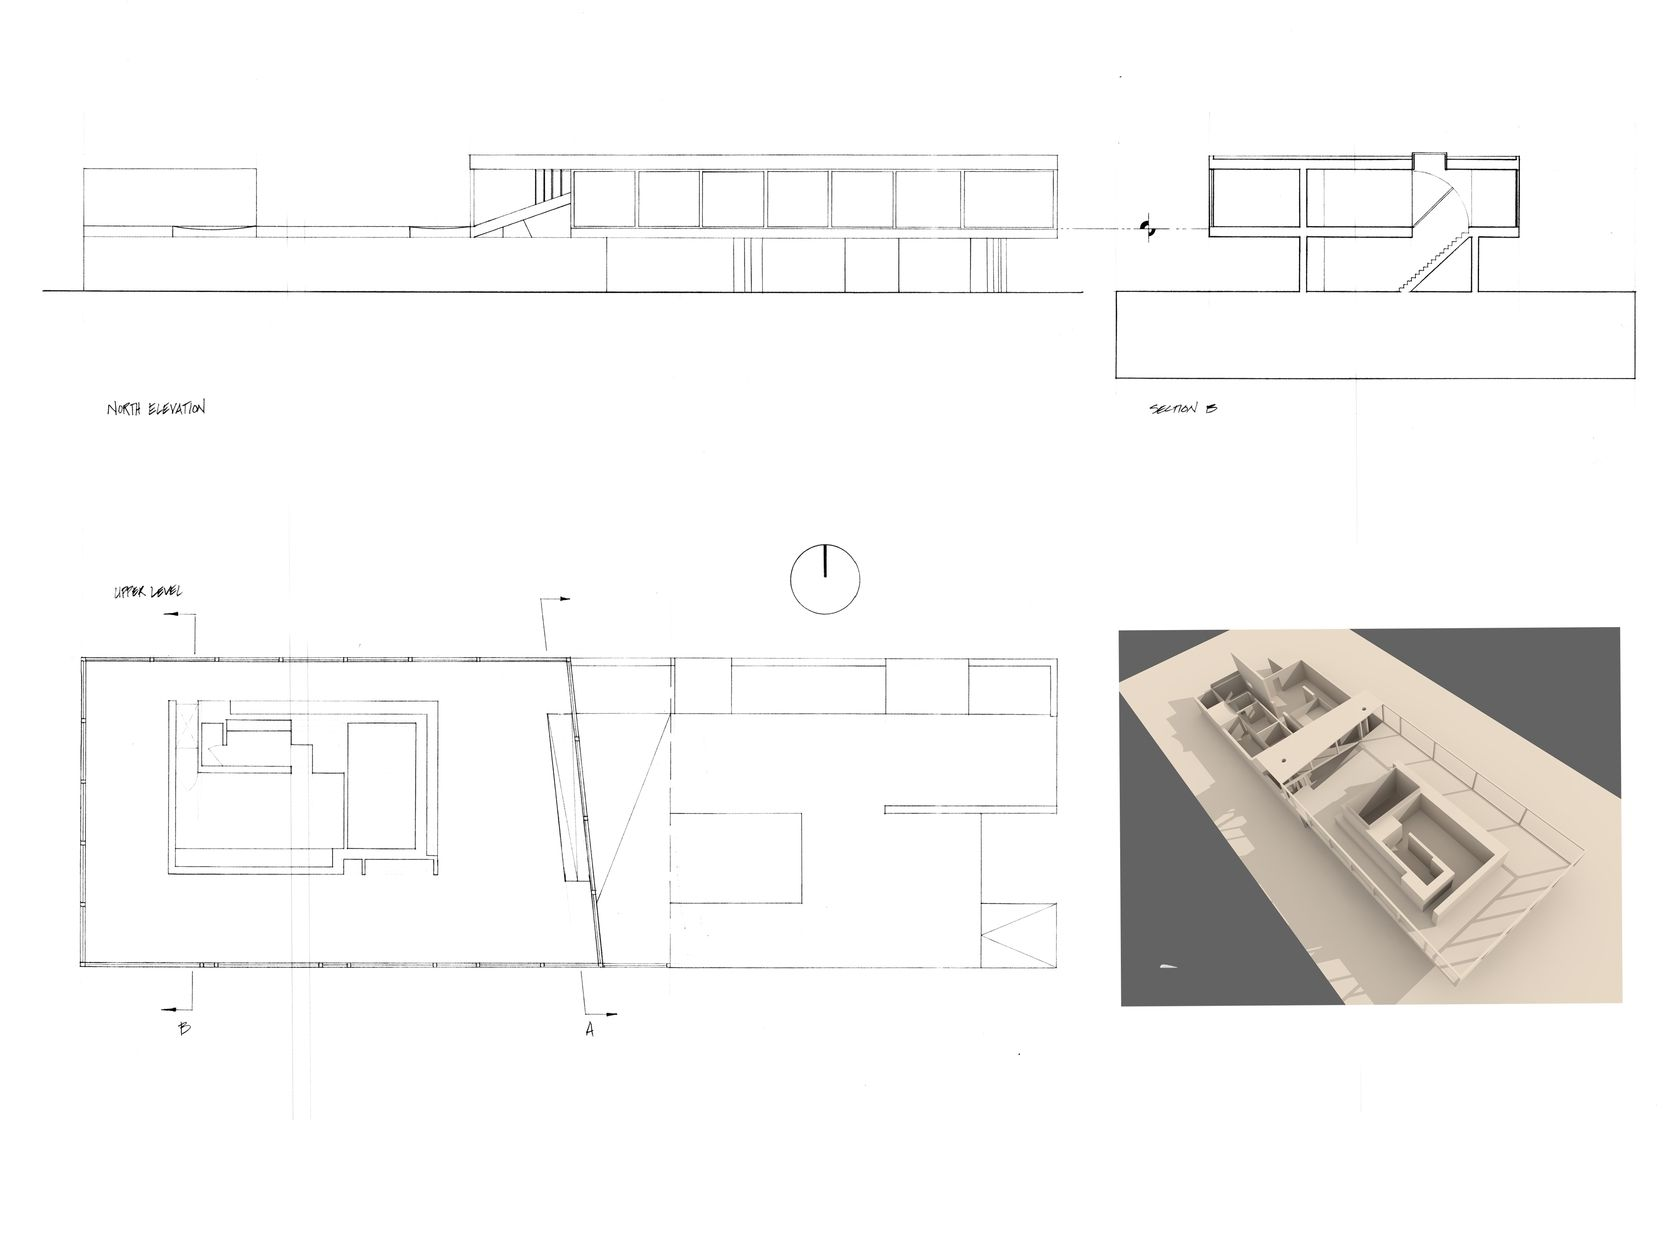 Rem koolhaas villa dall ava paris france 1991 atlas of -  Fall Through Diagramming Modeling And Both Digital And Hand Drawing Rem Koolhaas Dutch House Was Used As An Introduction To A Variety Of Representa